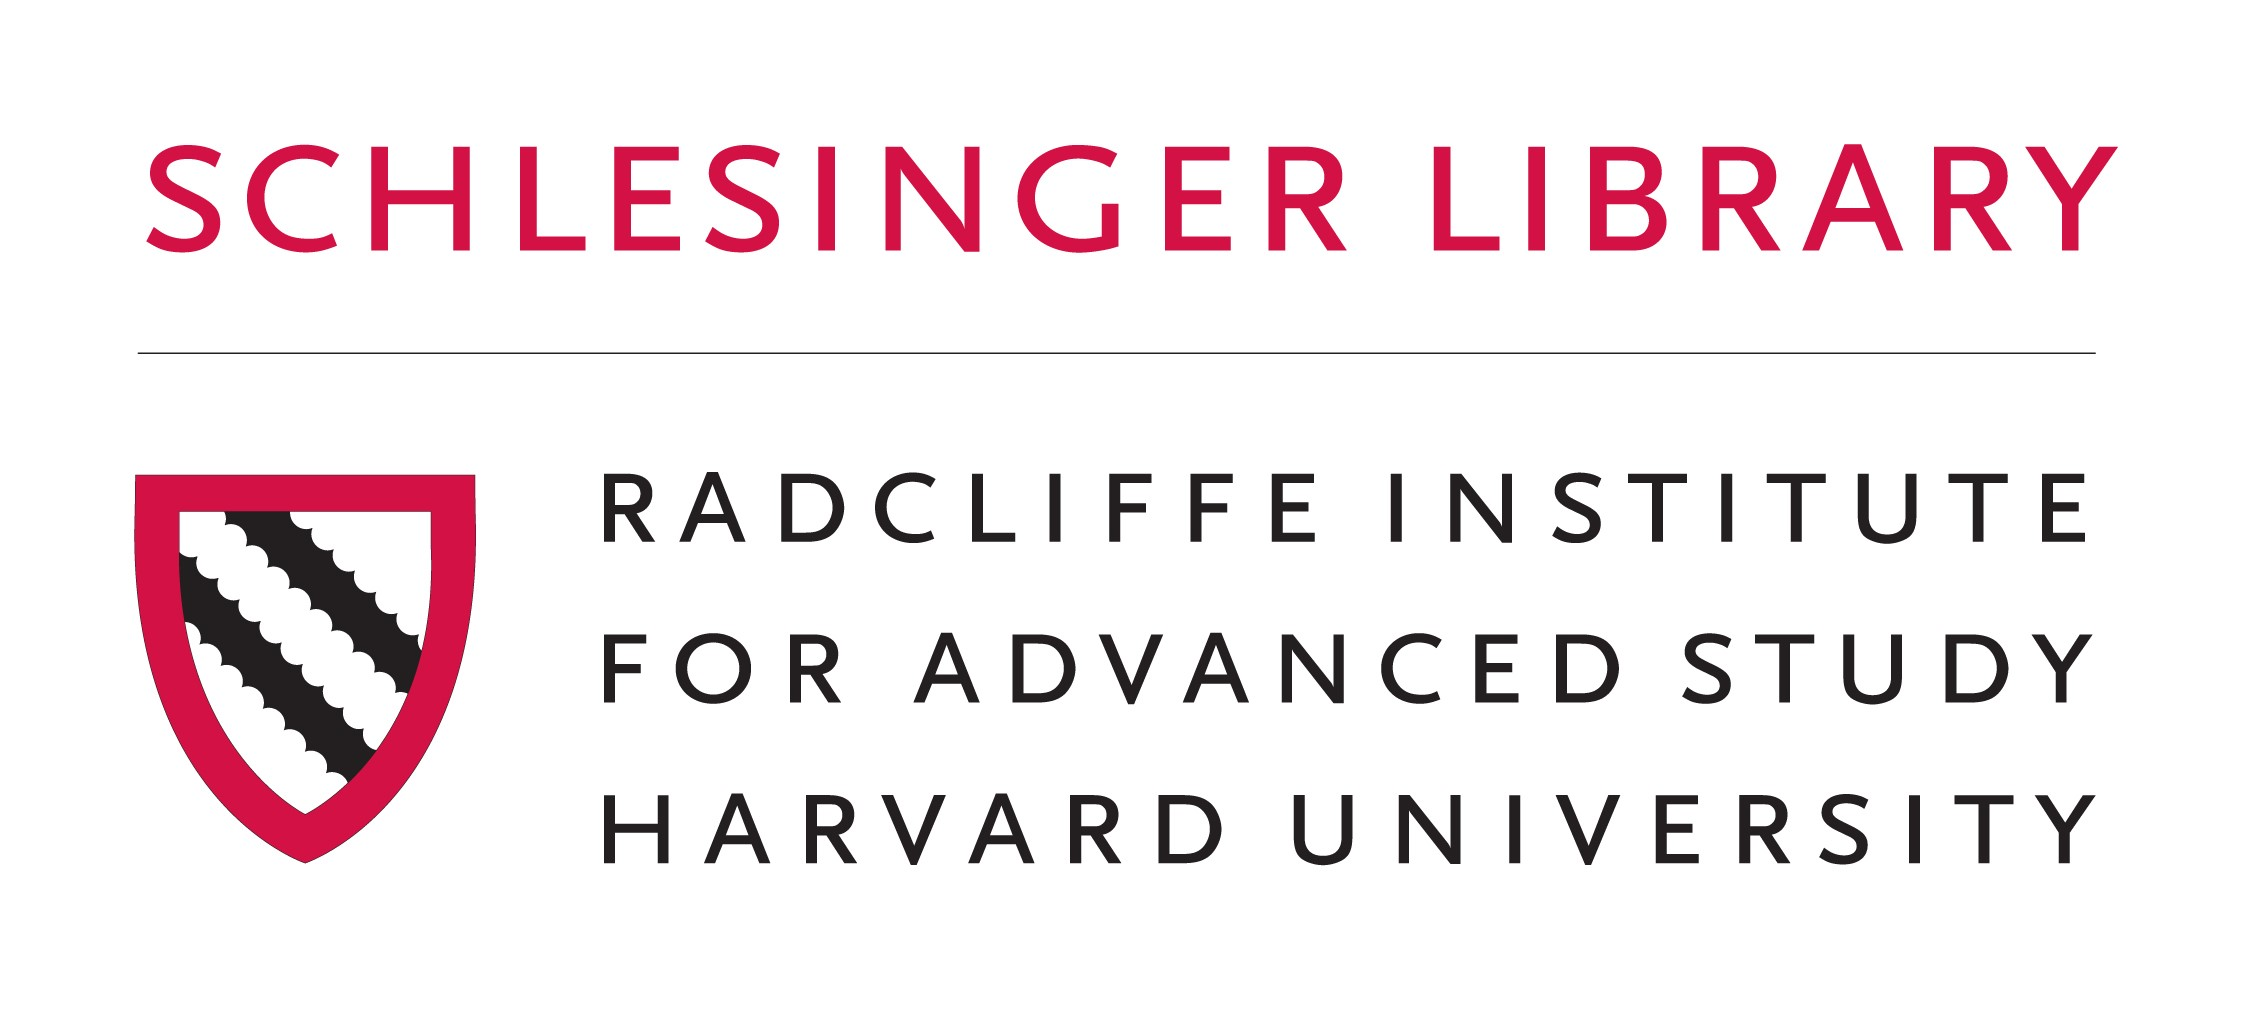 Schlesinger Library, Radcliffe Institute logo